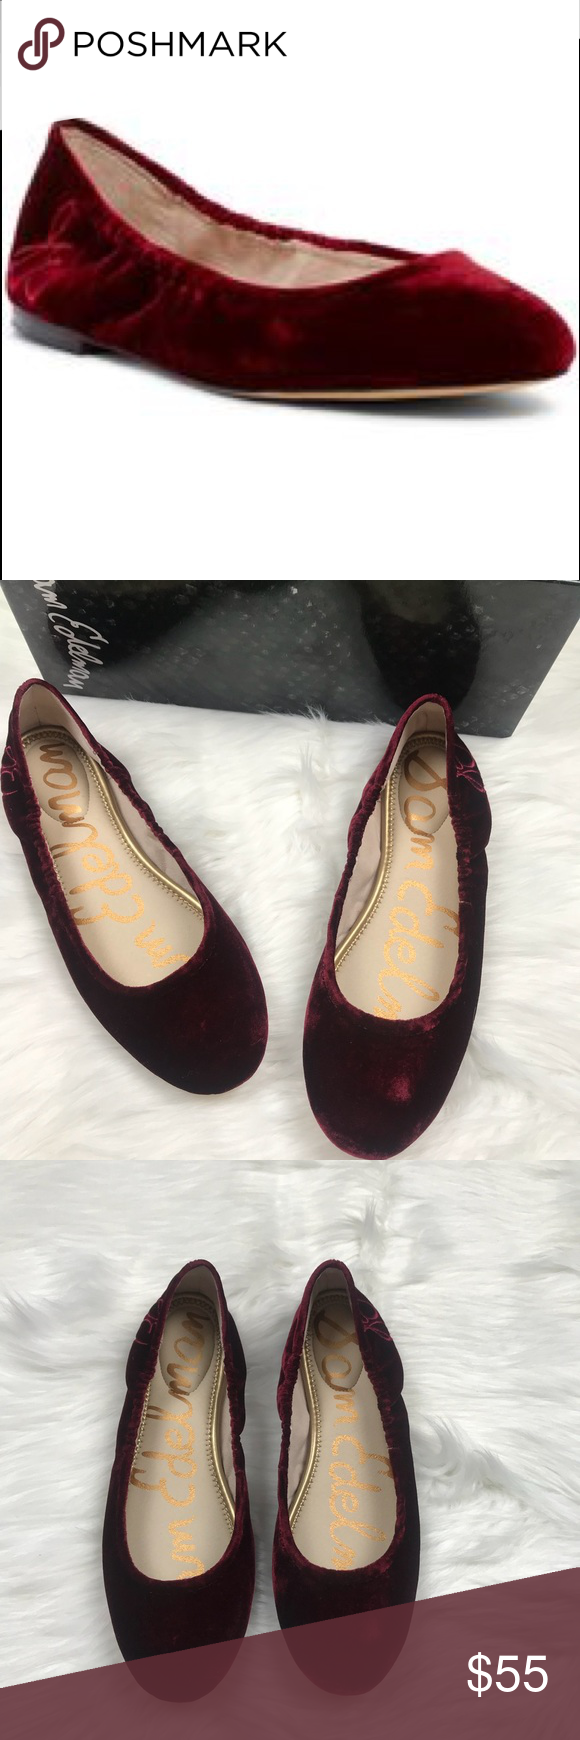 f85c3f36e742b0 NWOT Sam Edelman Fritz Cranberry Flats Size 7.5 Brand new in the box ...